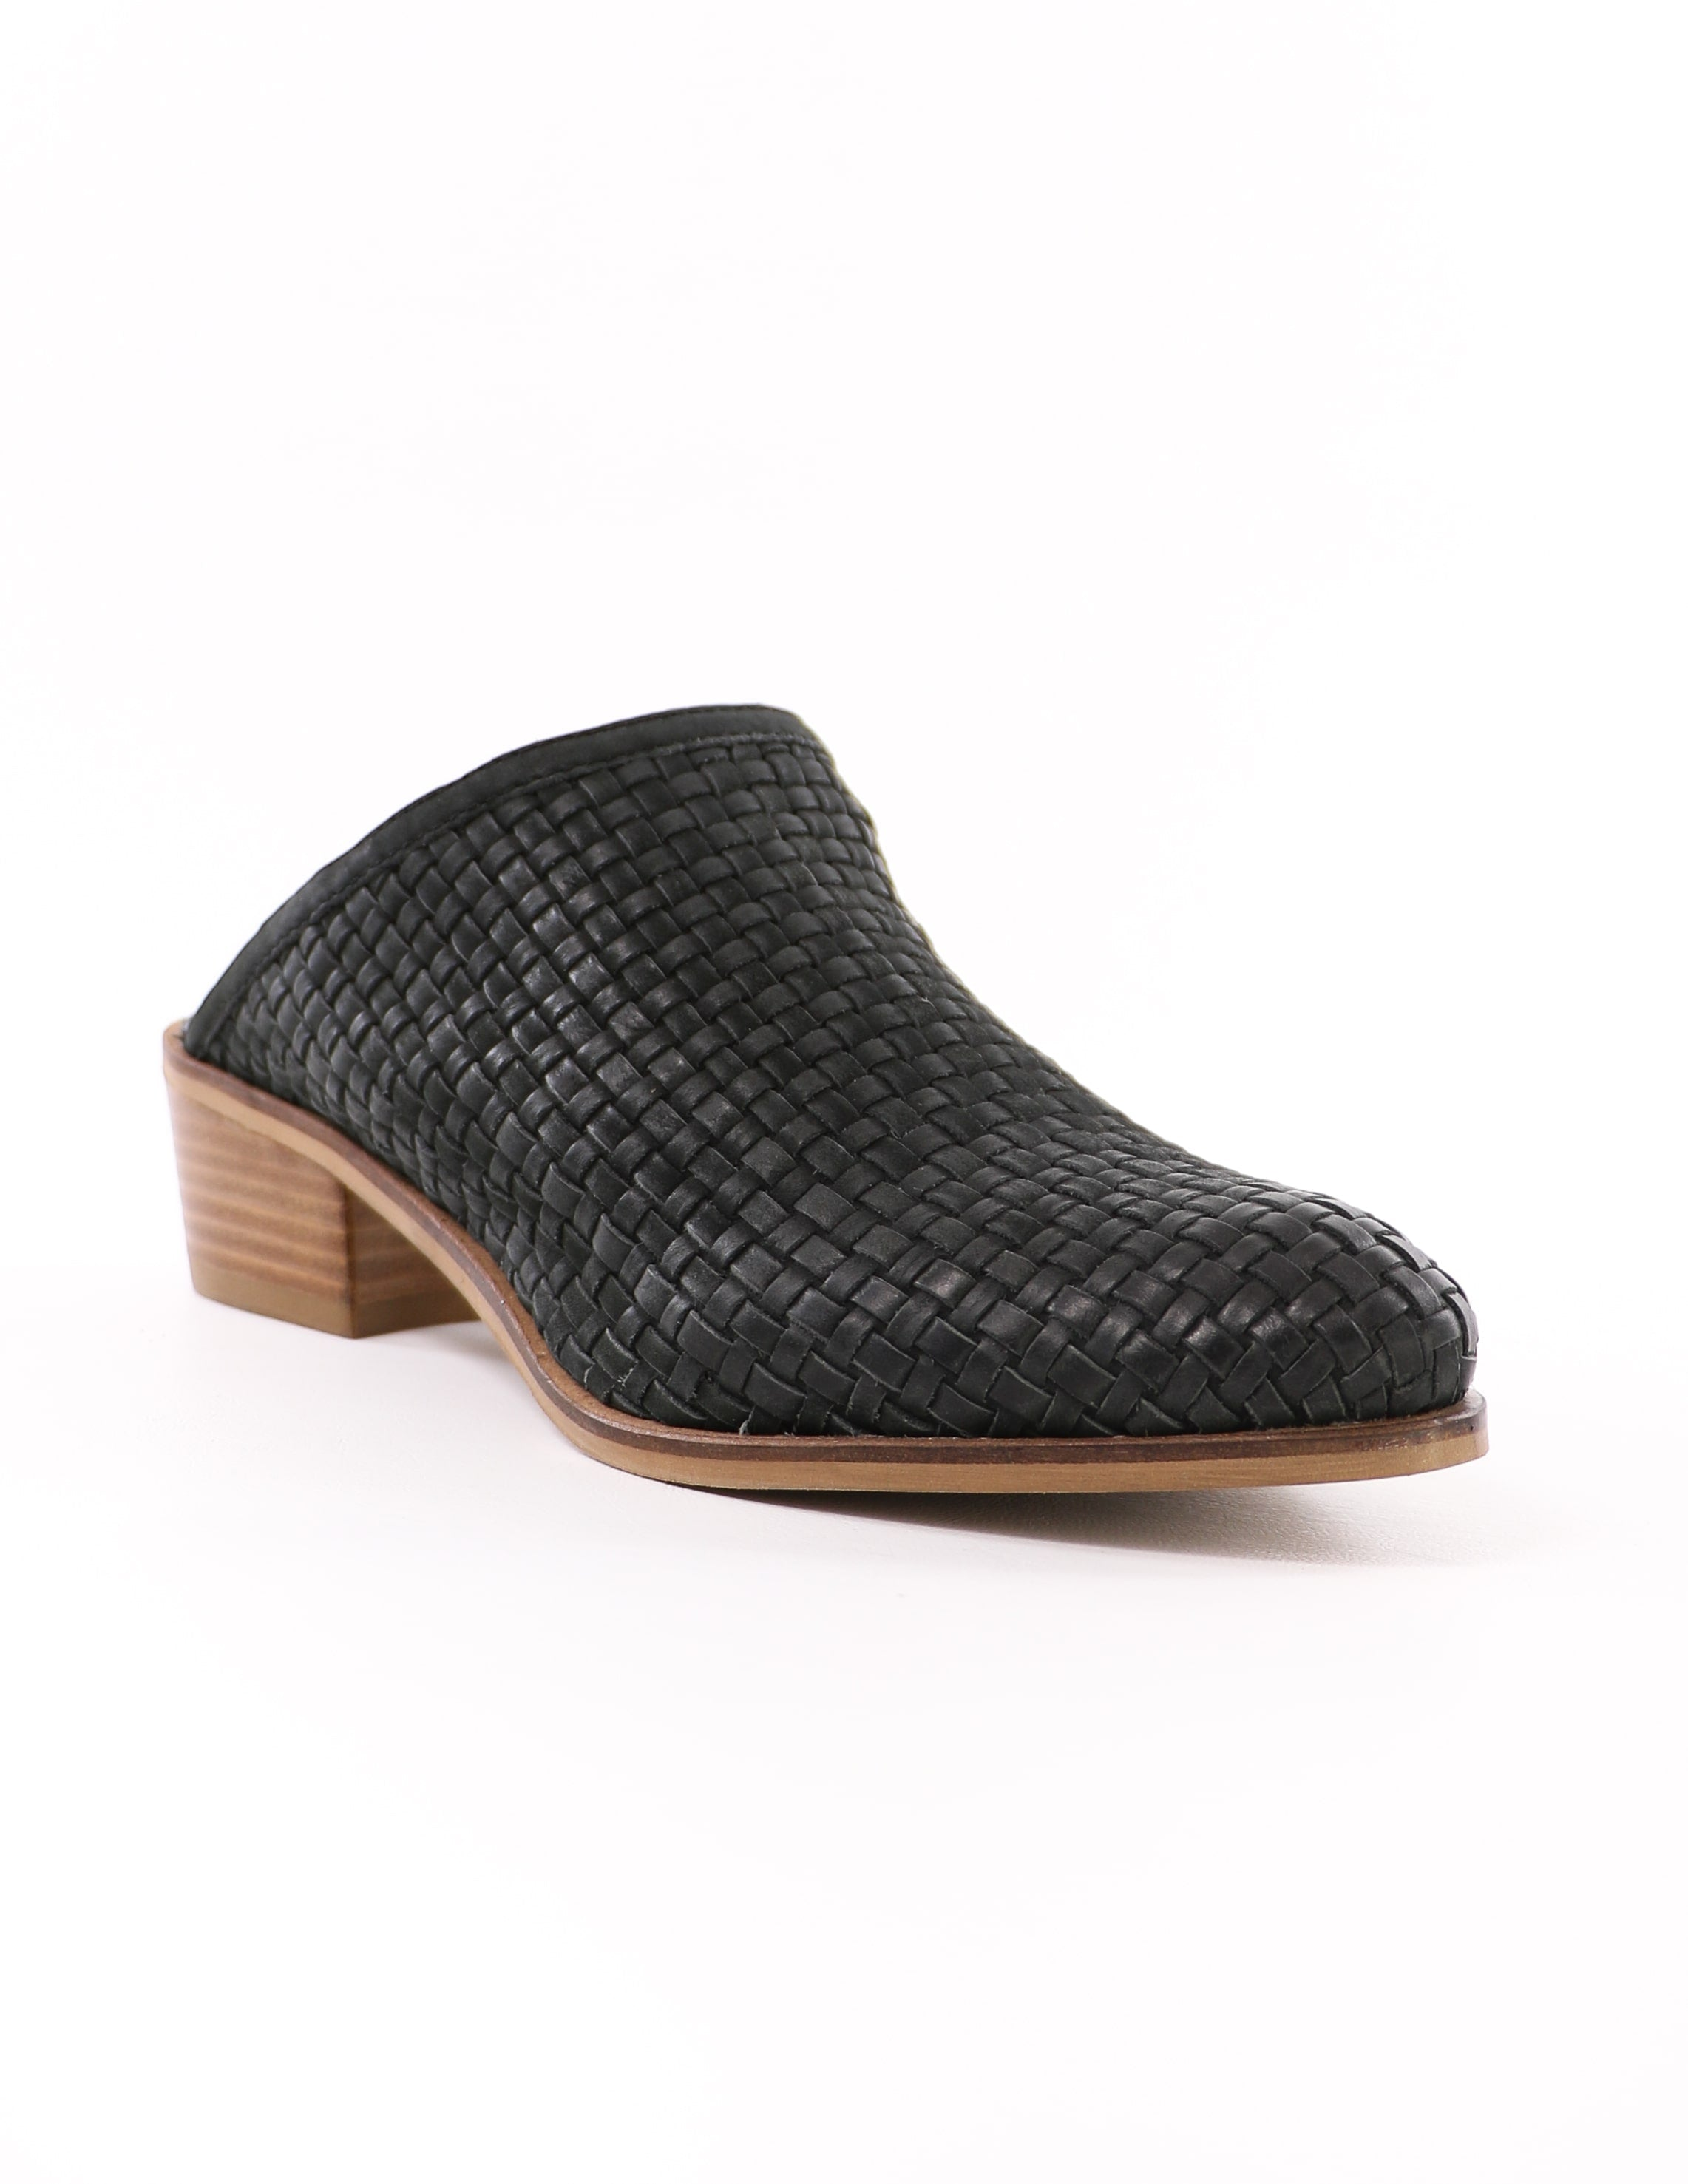 front of the almond toe slip on volatile the woven one black lacienega mule - elle bleu shoes